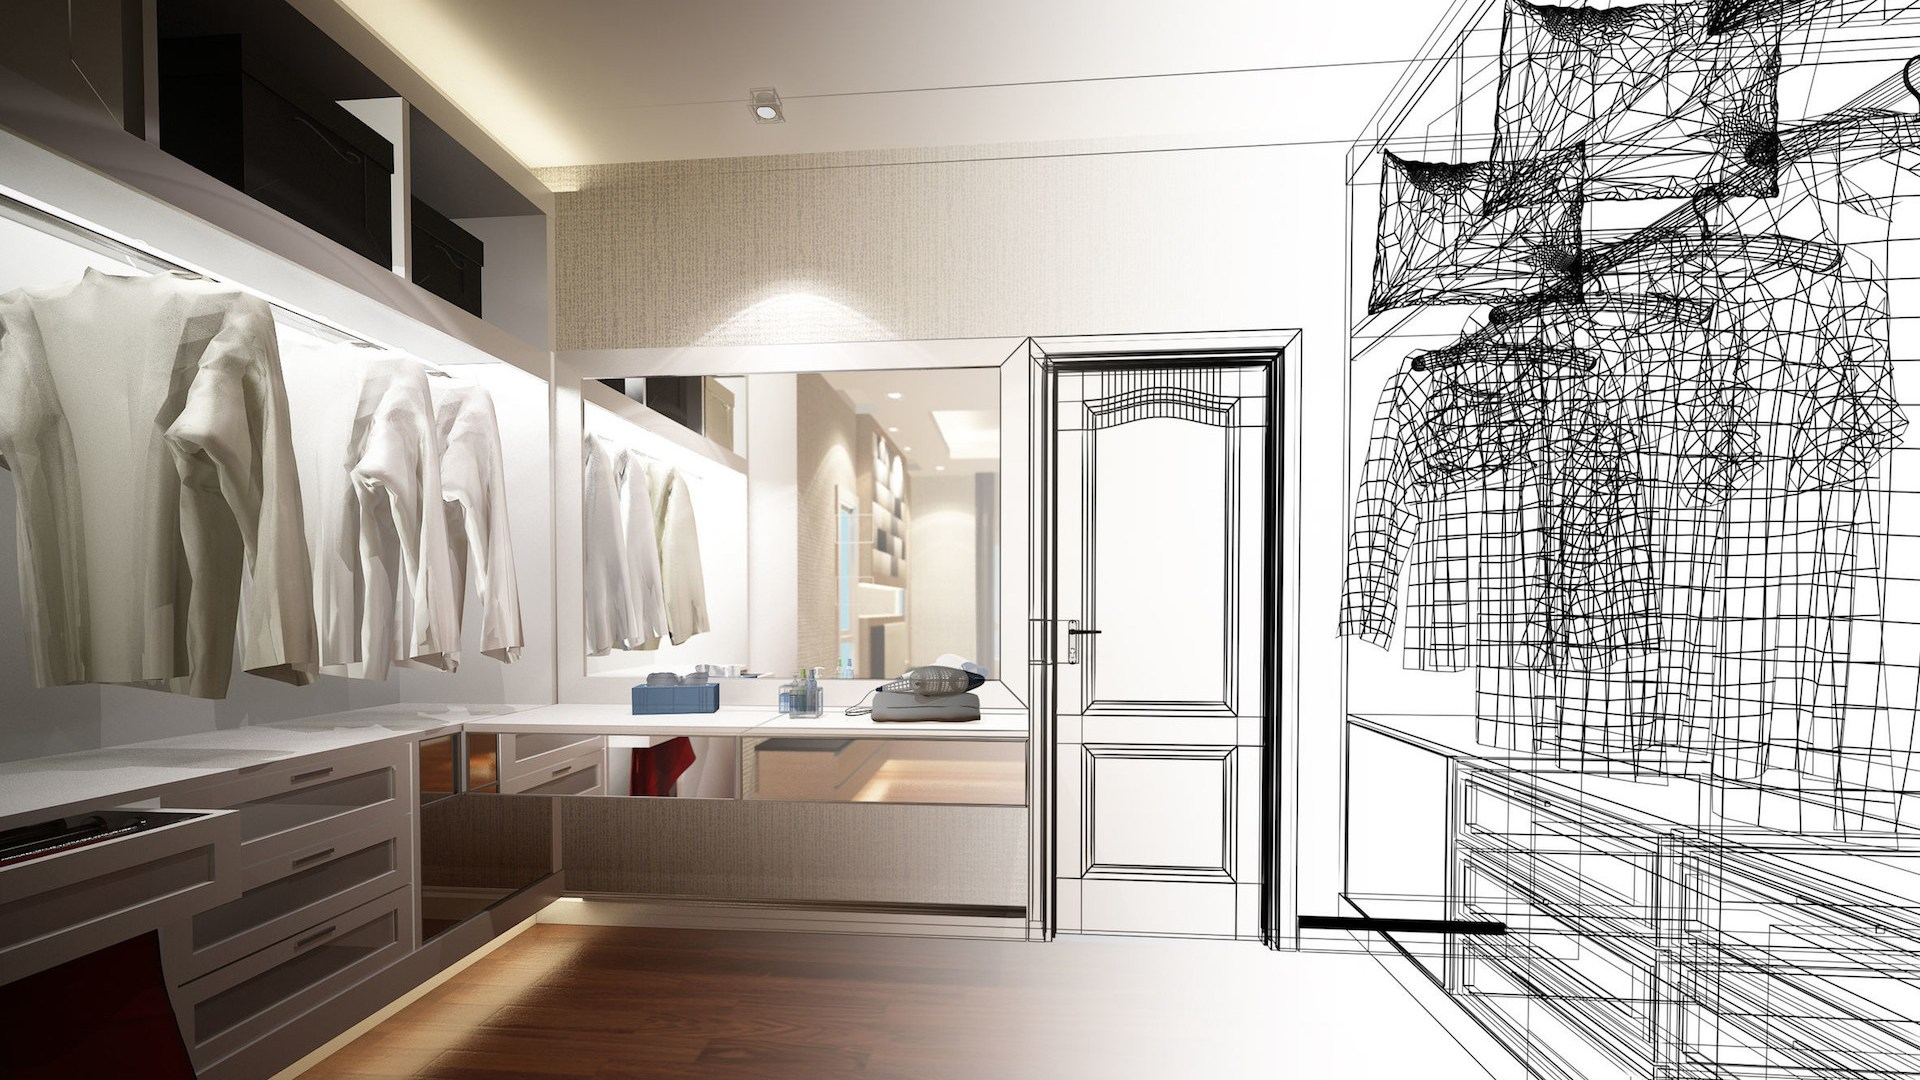 Custom Closet Design for your Home Remodel